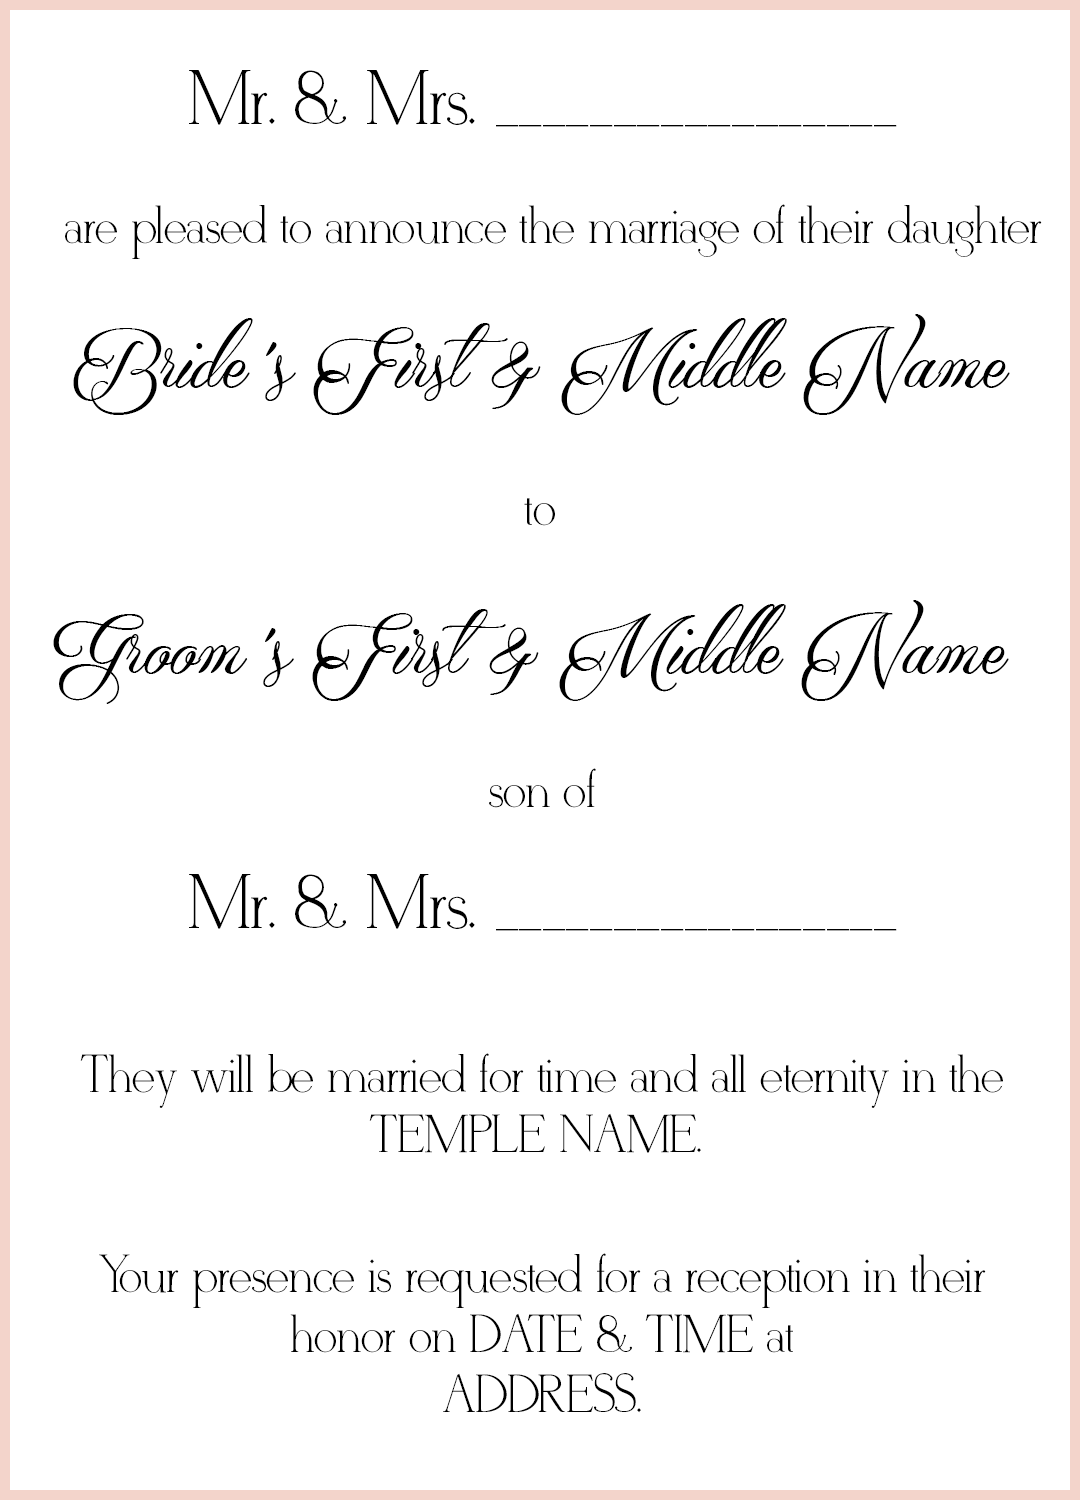 Lds wedding invitation wording sample 2 lds wedding lds wedding invitation wording sample 2 stopboris